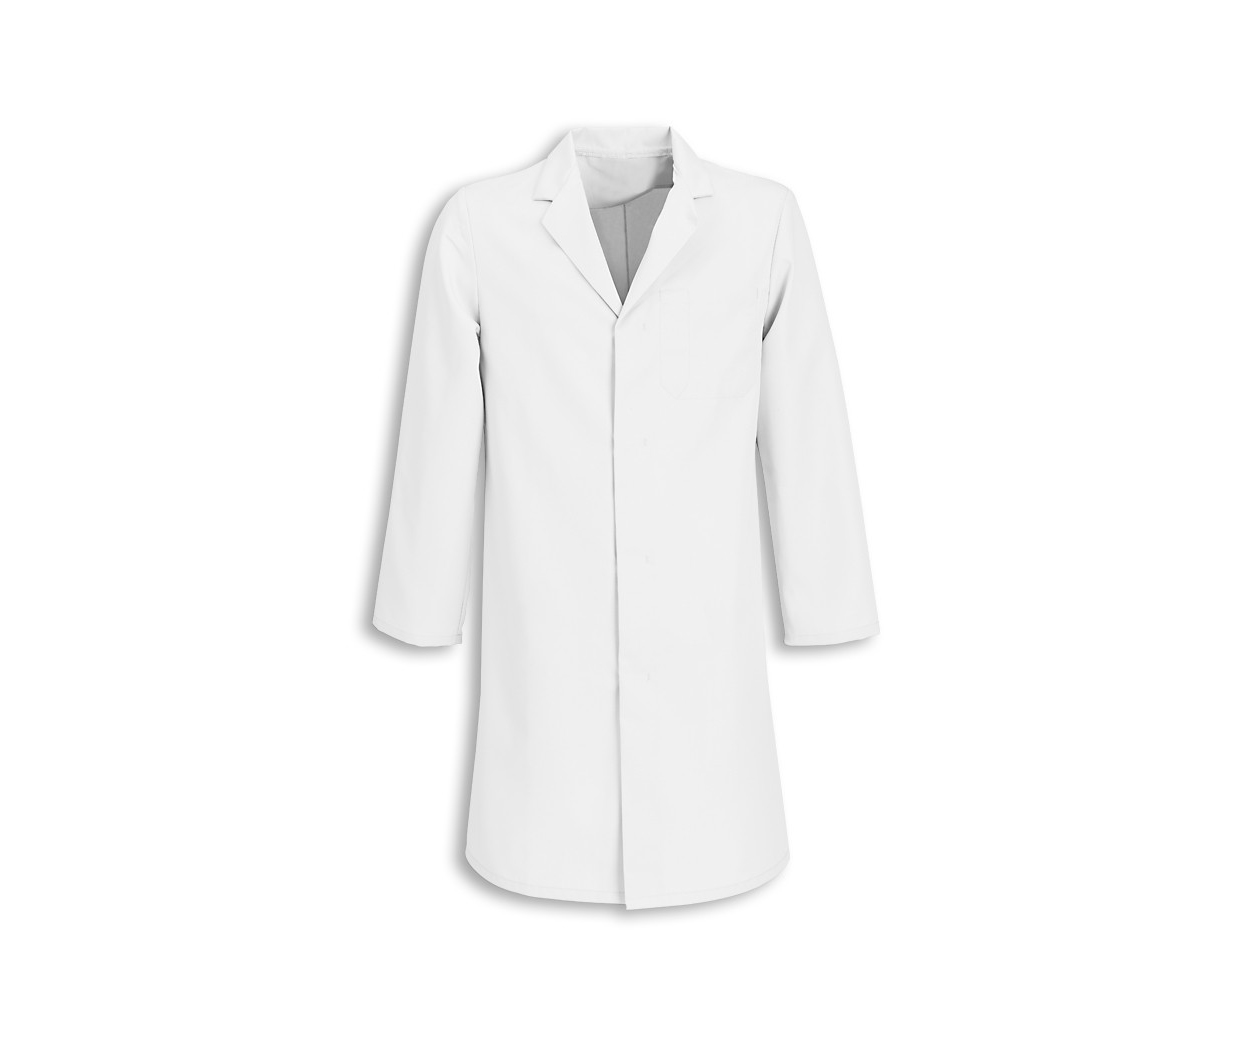 Men's Polyester Lab Coat